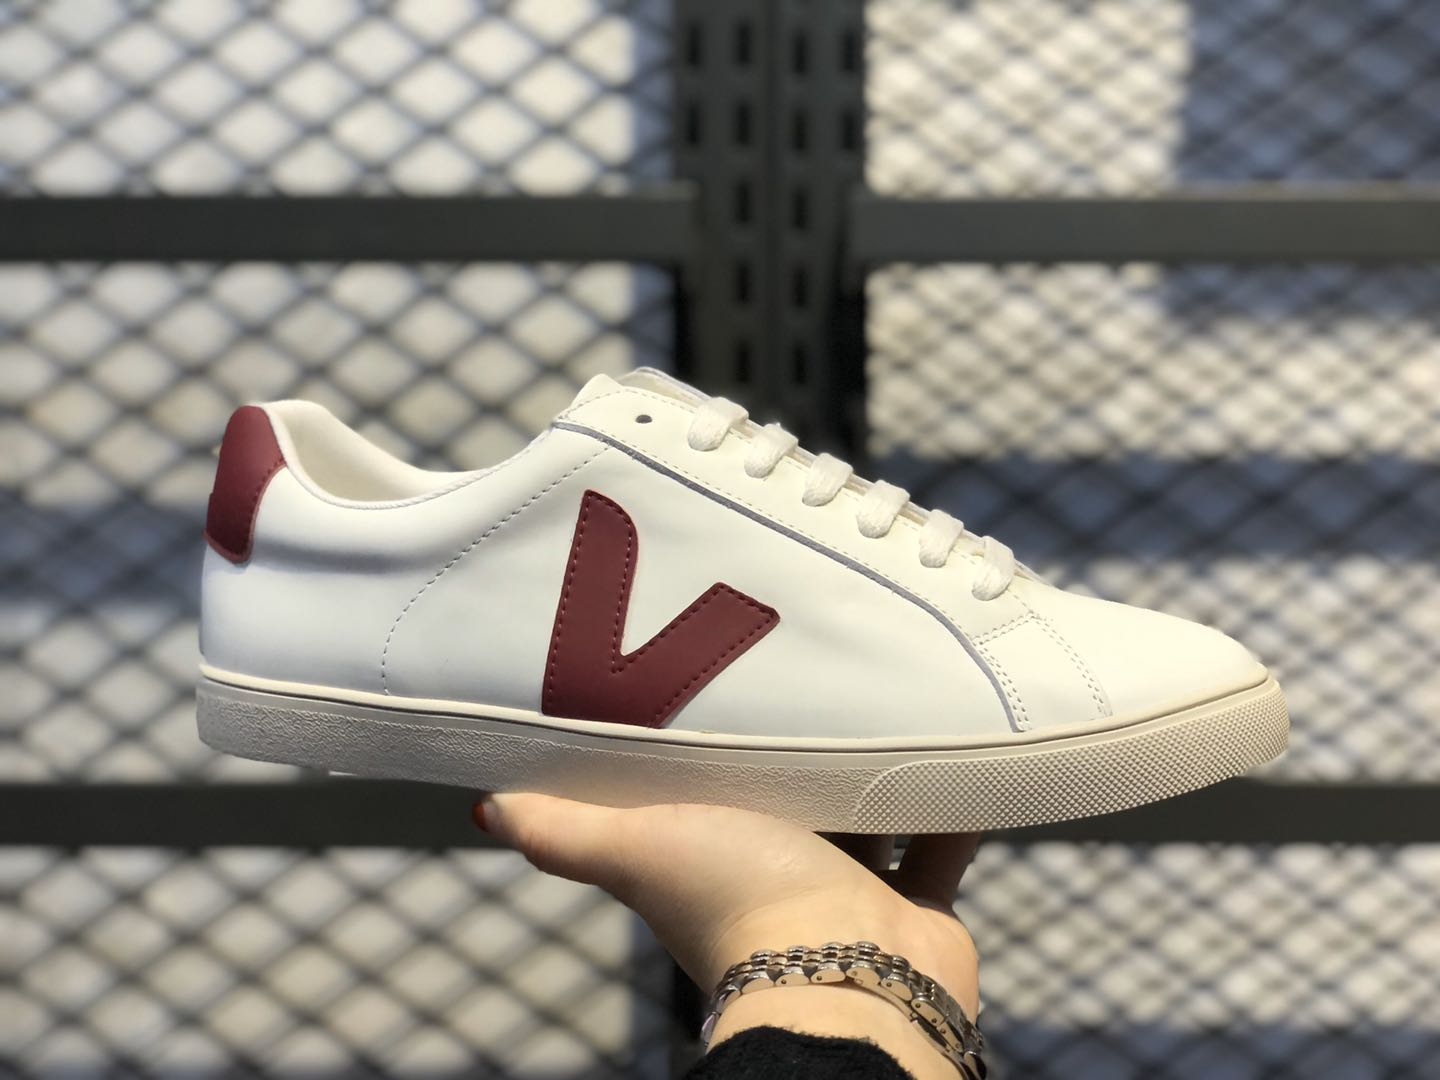 Veja Leather Extra Sneakers White/Infrared In Stock